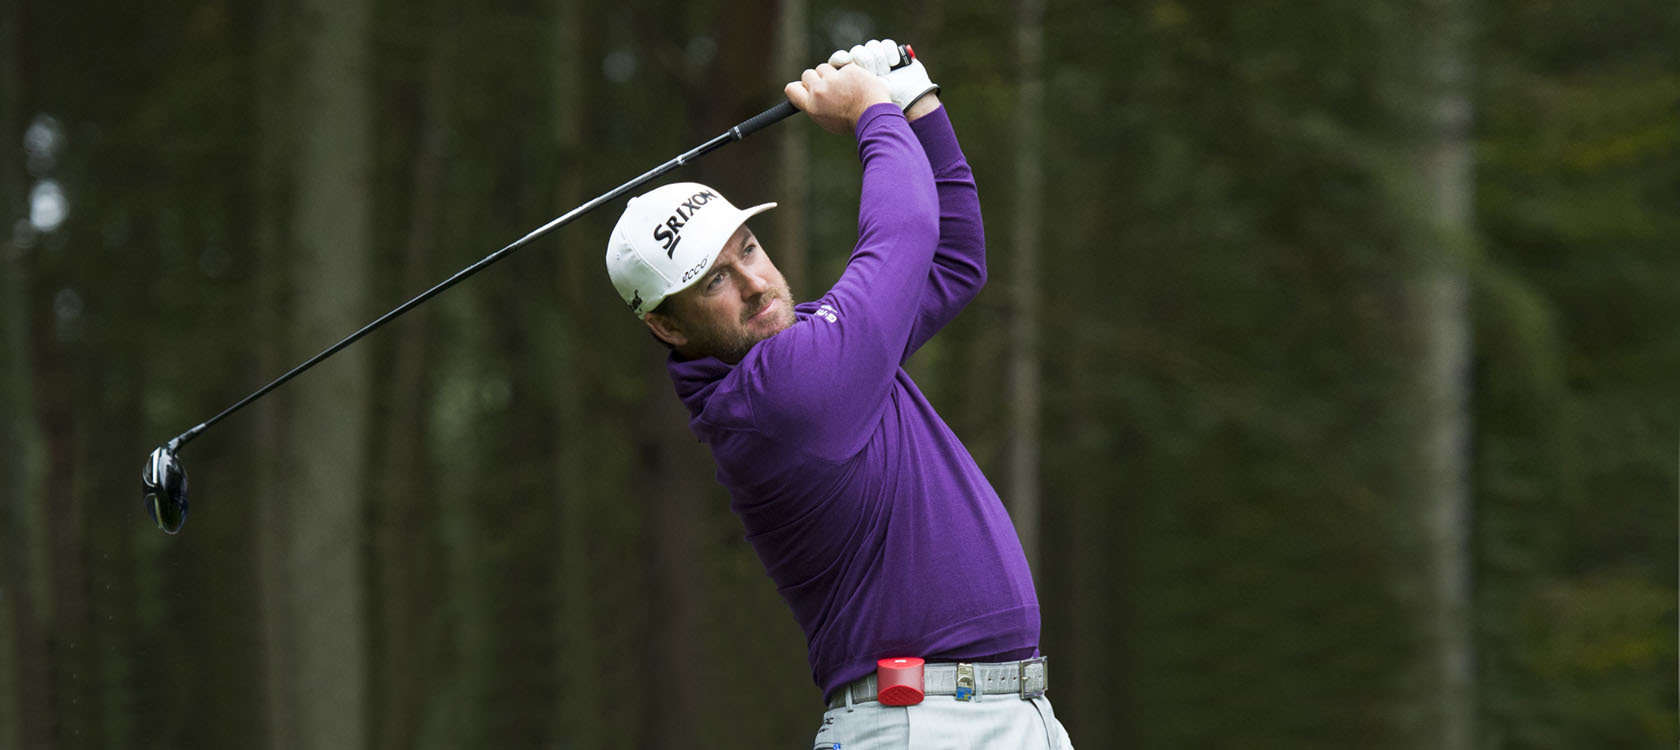 Graeme McDowell Of Northern Ireland In Action During A Pro-Am Round Ahead Of The 2015 British Masters At The Marquess Course, Woburn, In Bedfordshire, England On 7/10/15. Picture: Richard Martin-Roberts | Golffile